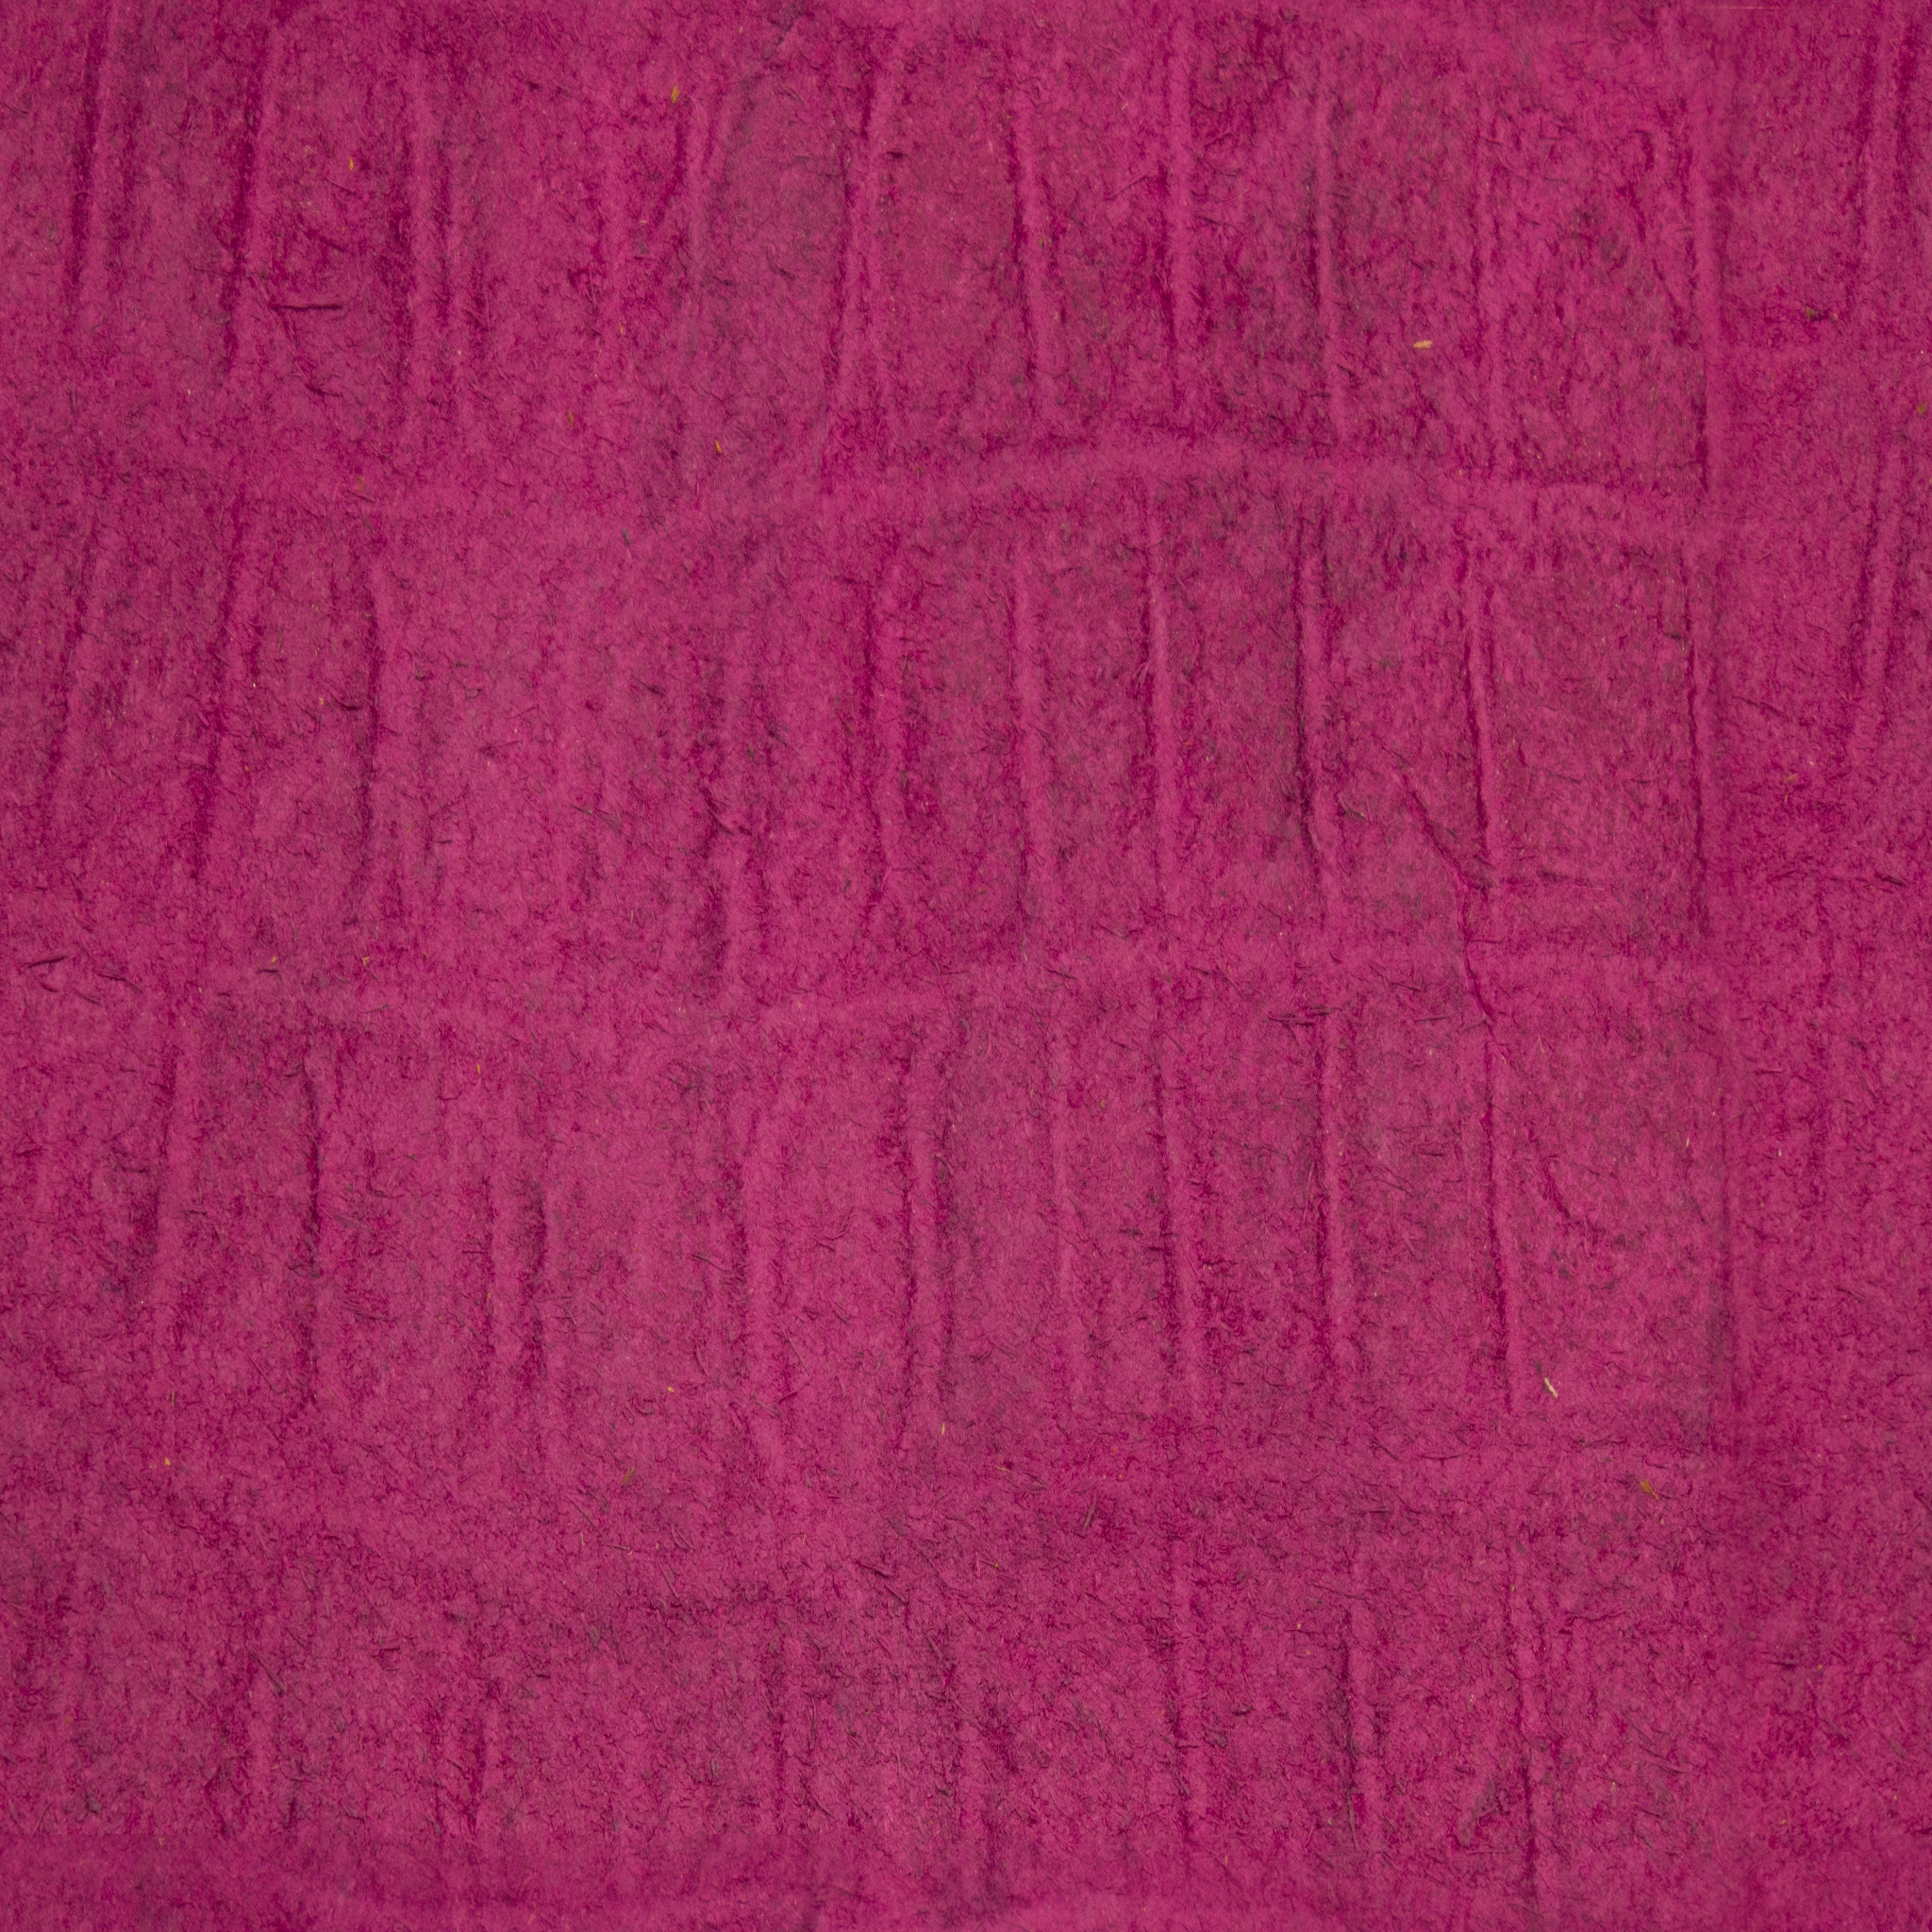 Fuchsia Pink Scaled Leather.jpg